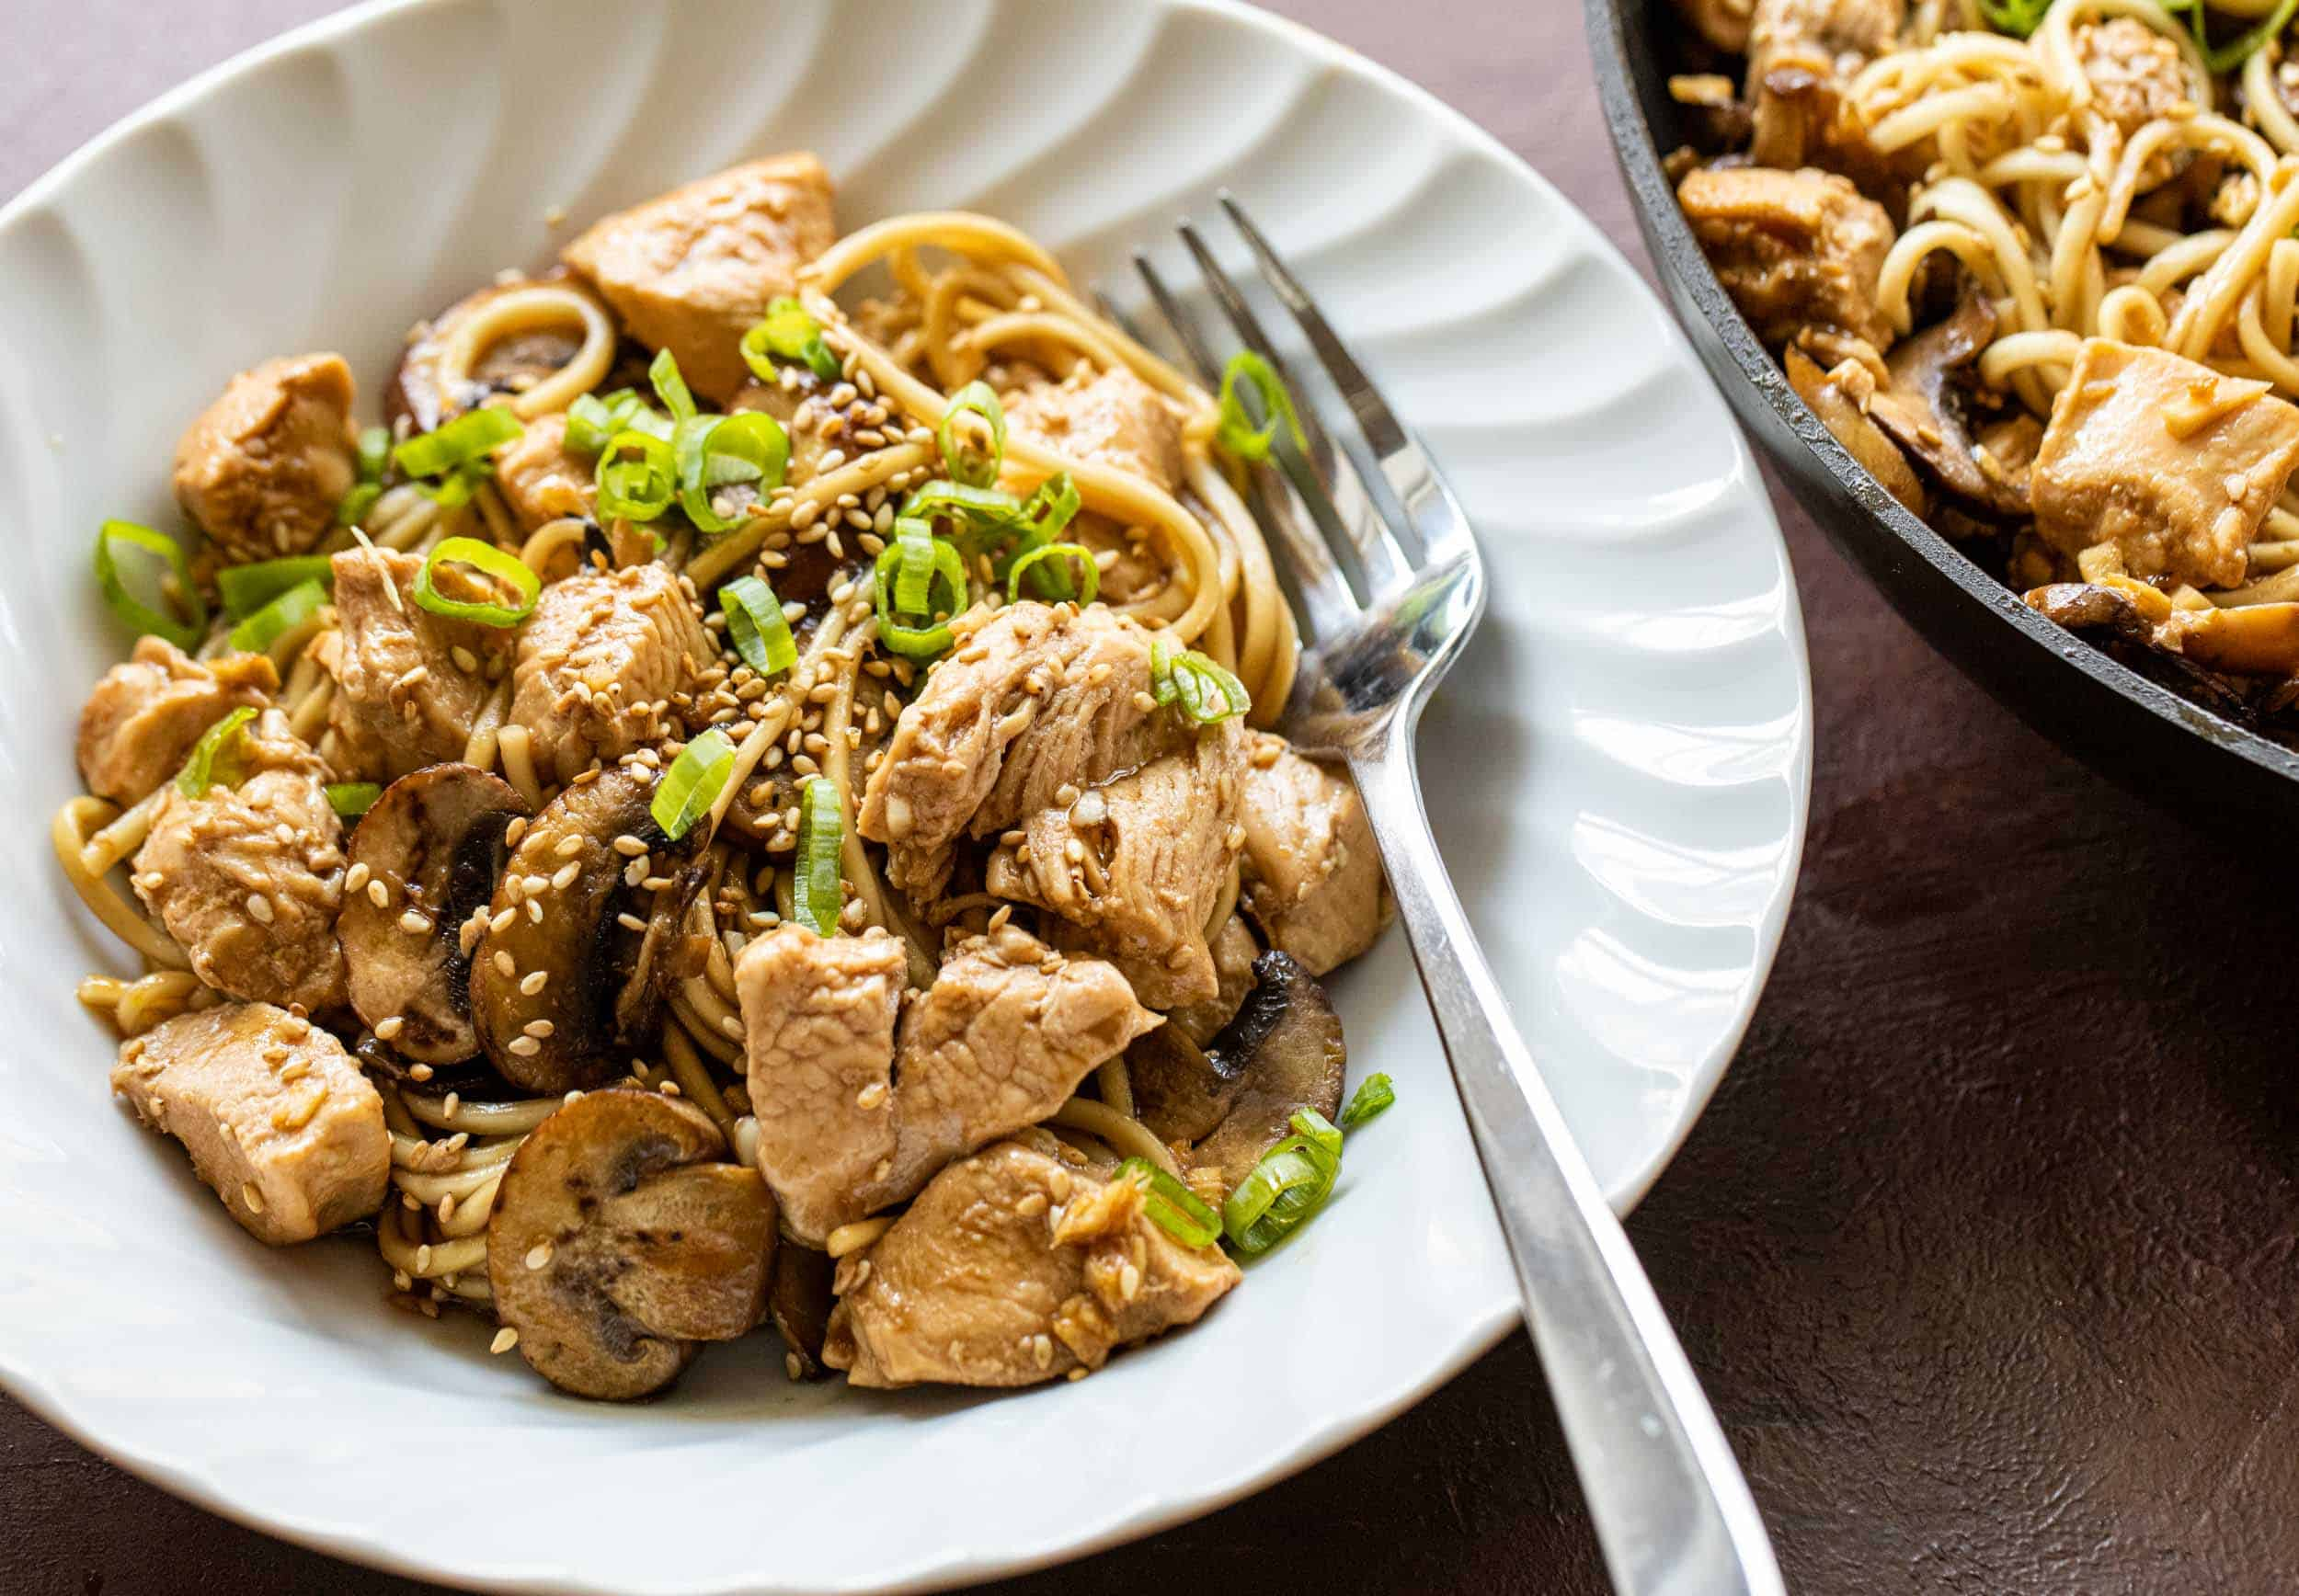 Chicken and Mushroom Lo Mein